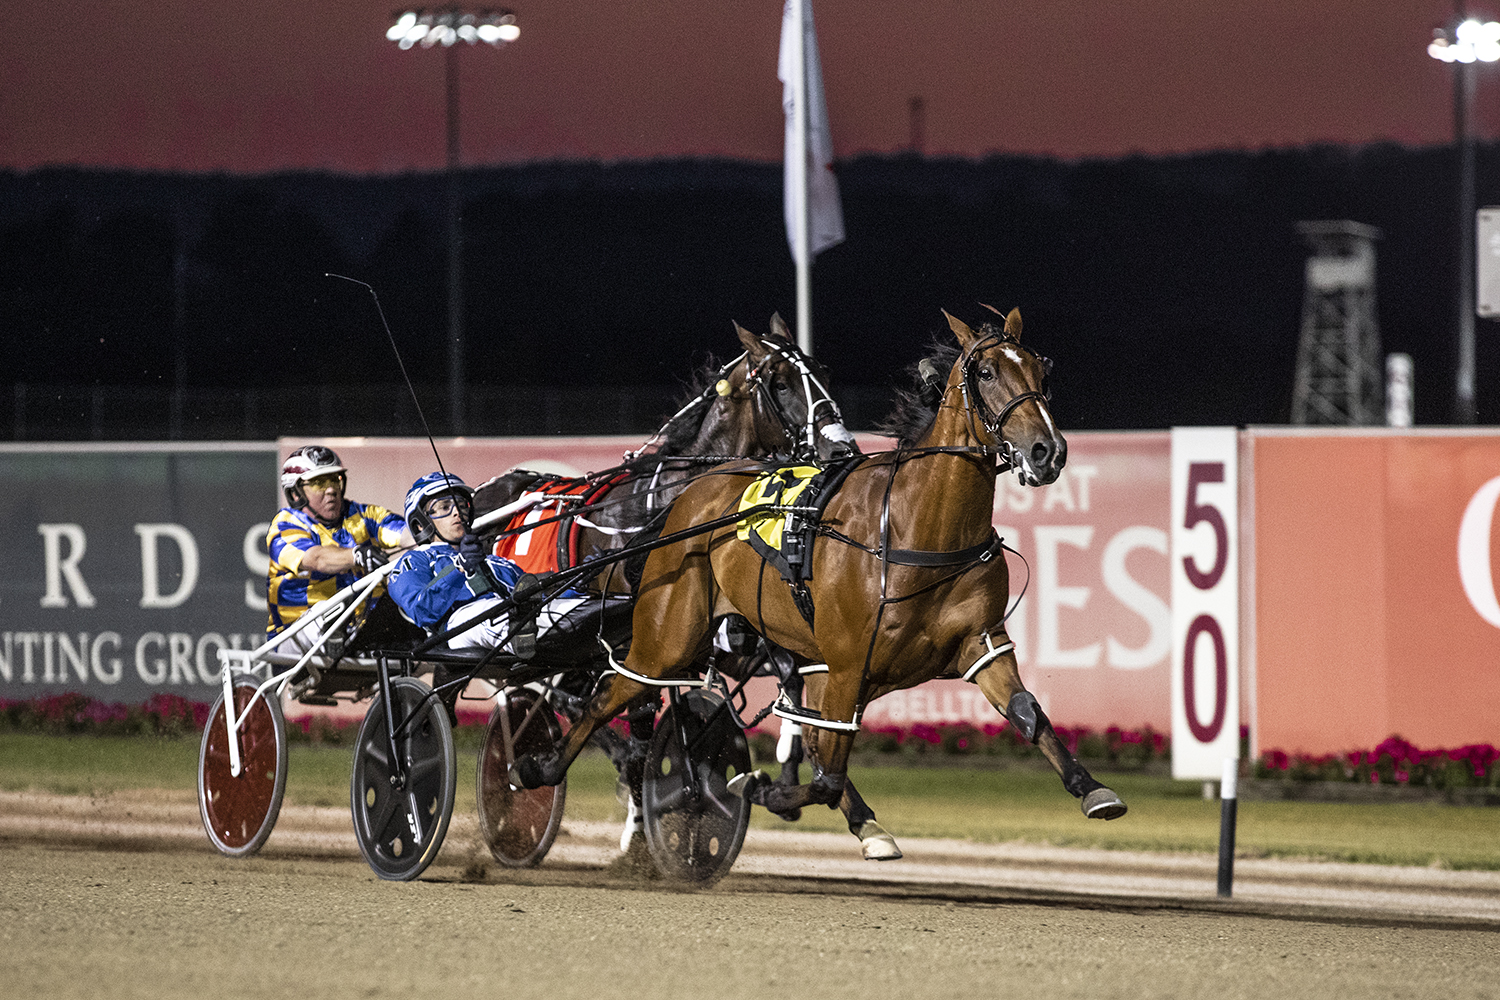 MIKE KO'CASS PREVIEWS MIRACLE MILE NIGHT AT MENANGLE